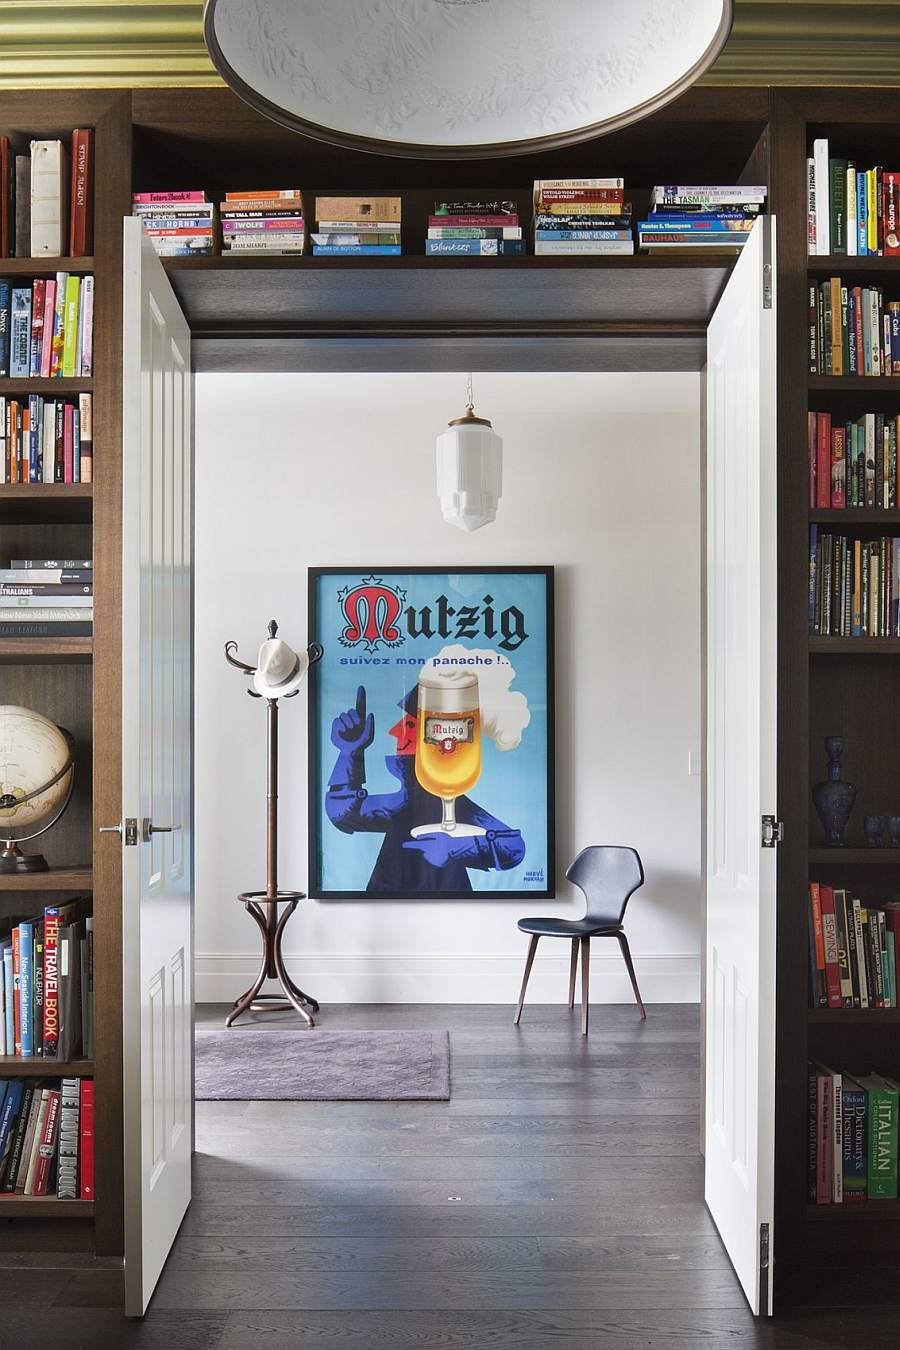 Framed posters add stule to the interior